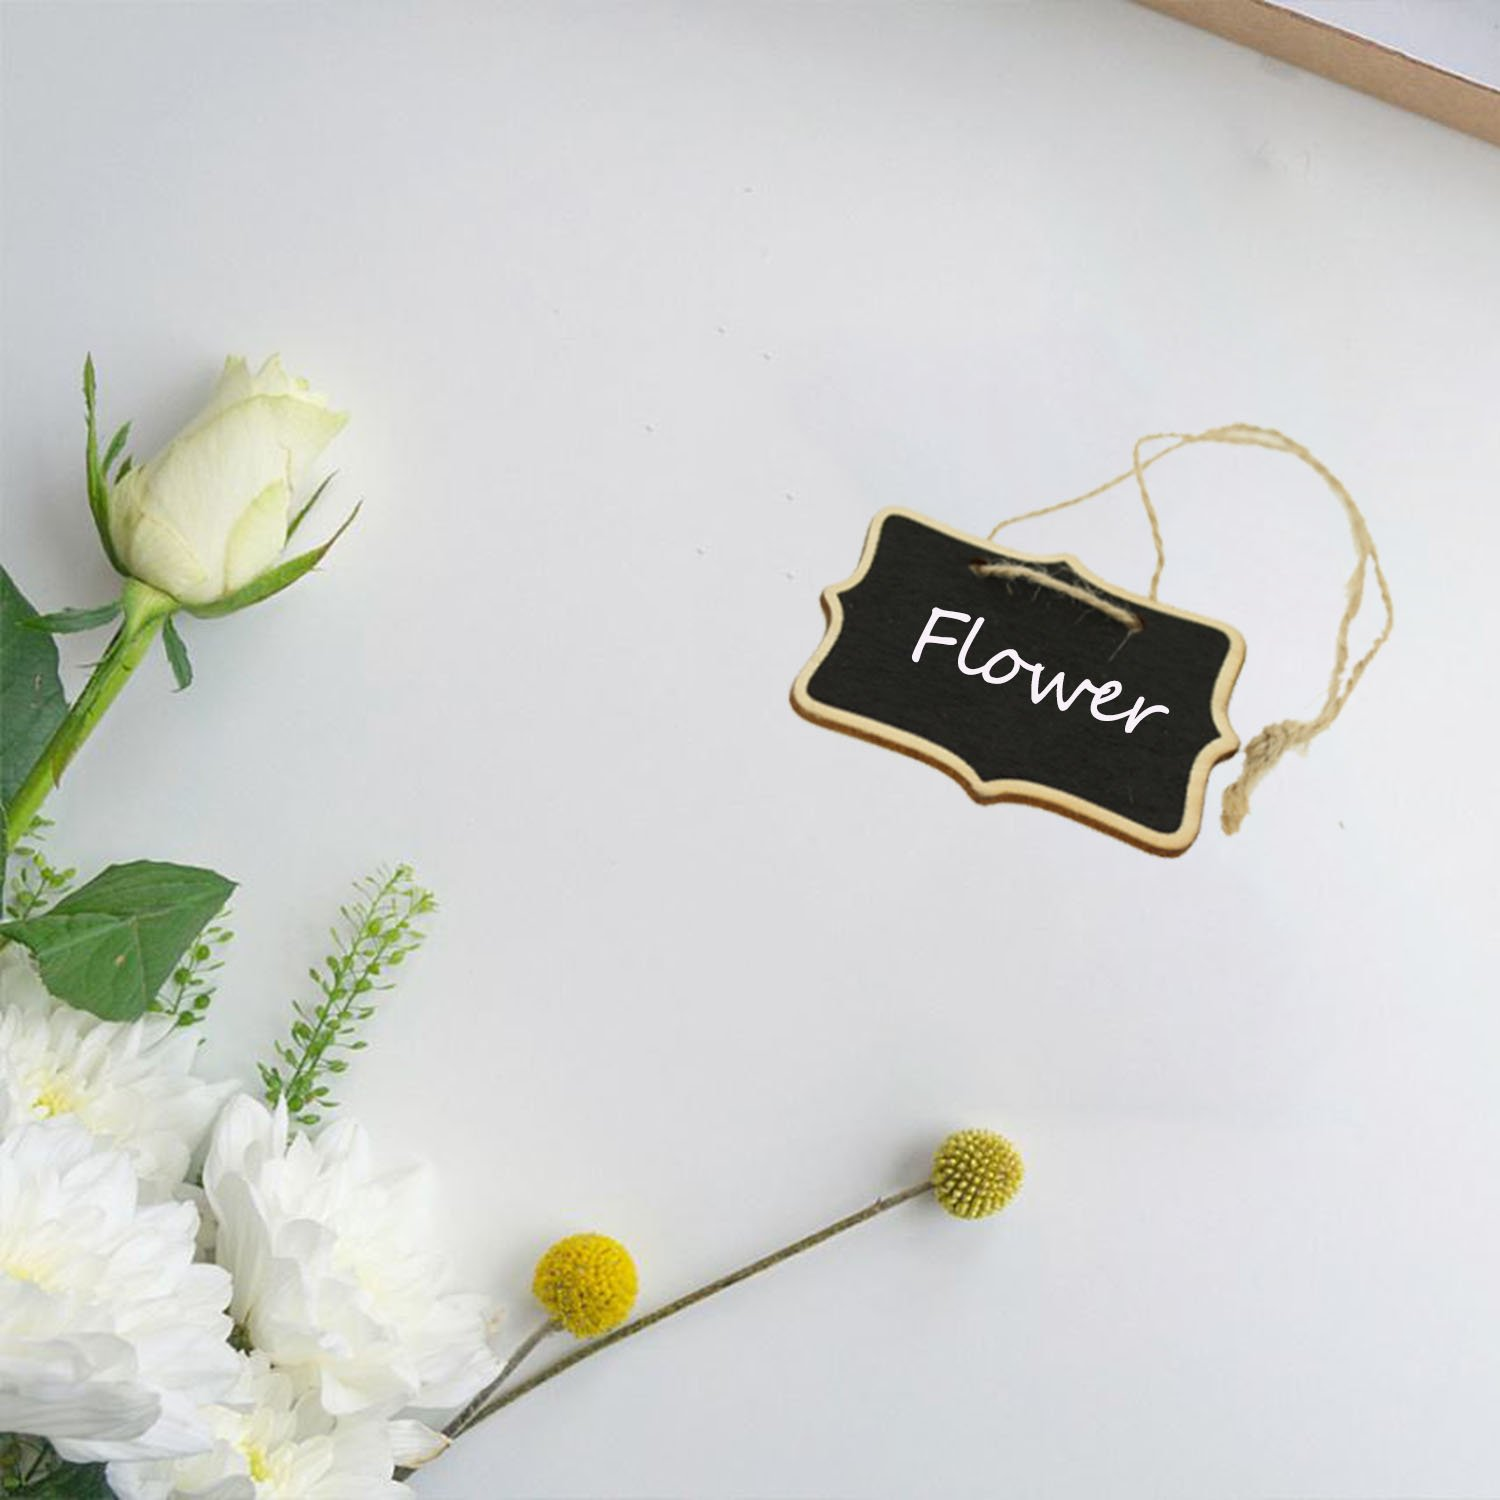 TIMGOU 15 Pack Mini Chalkboards Signs with Stand, Wood Writing Signs including 5 Rectangle, 5 Laciness and 5 Hanging Style Message Board Signs for Wedding, Party, with 1 Box Chalk by TIMGOU (Image #5)